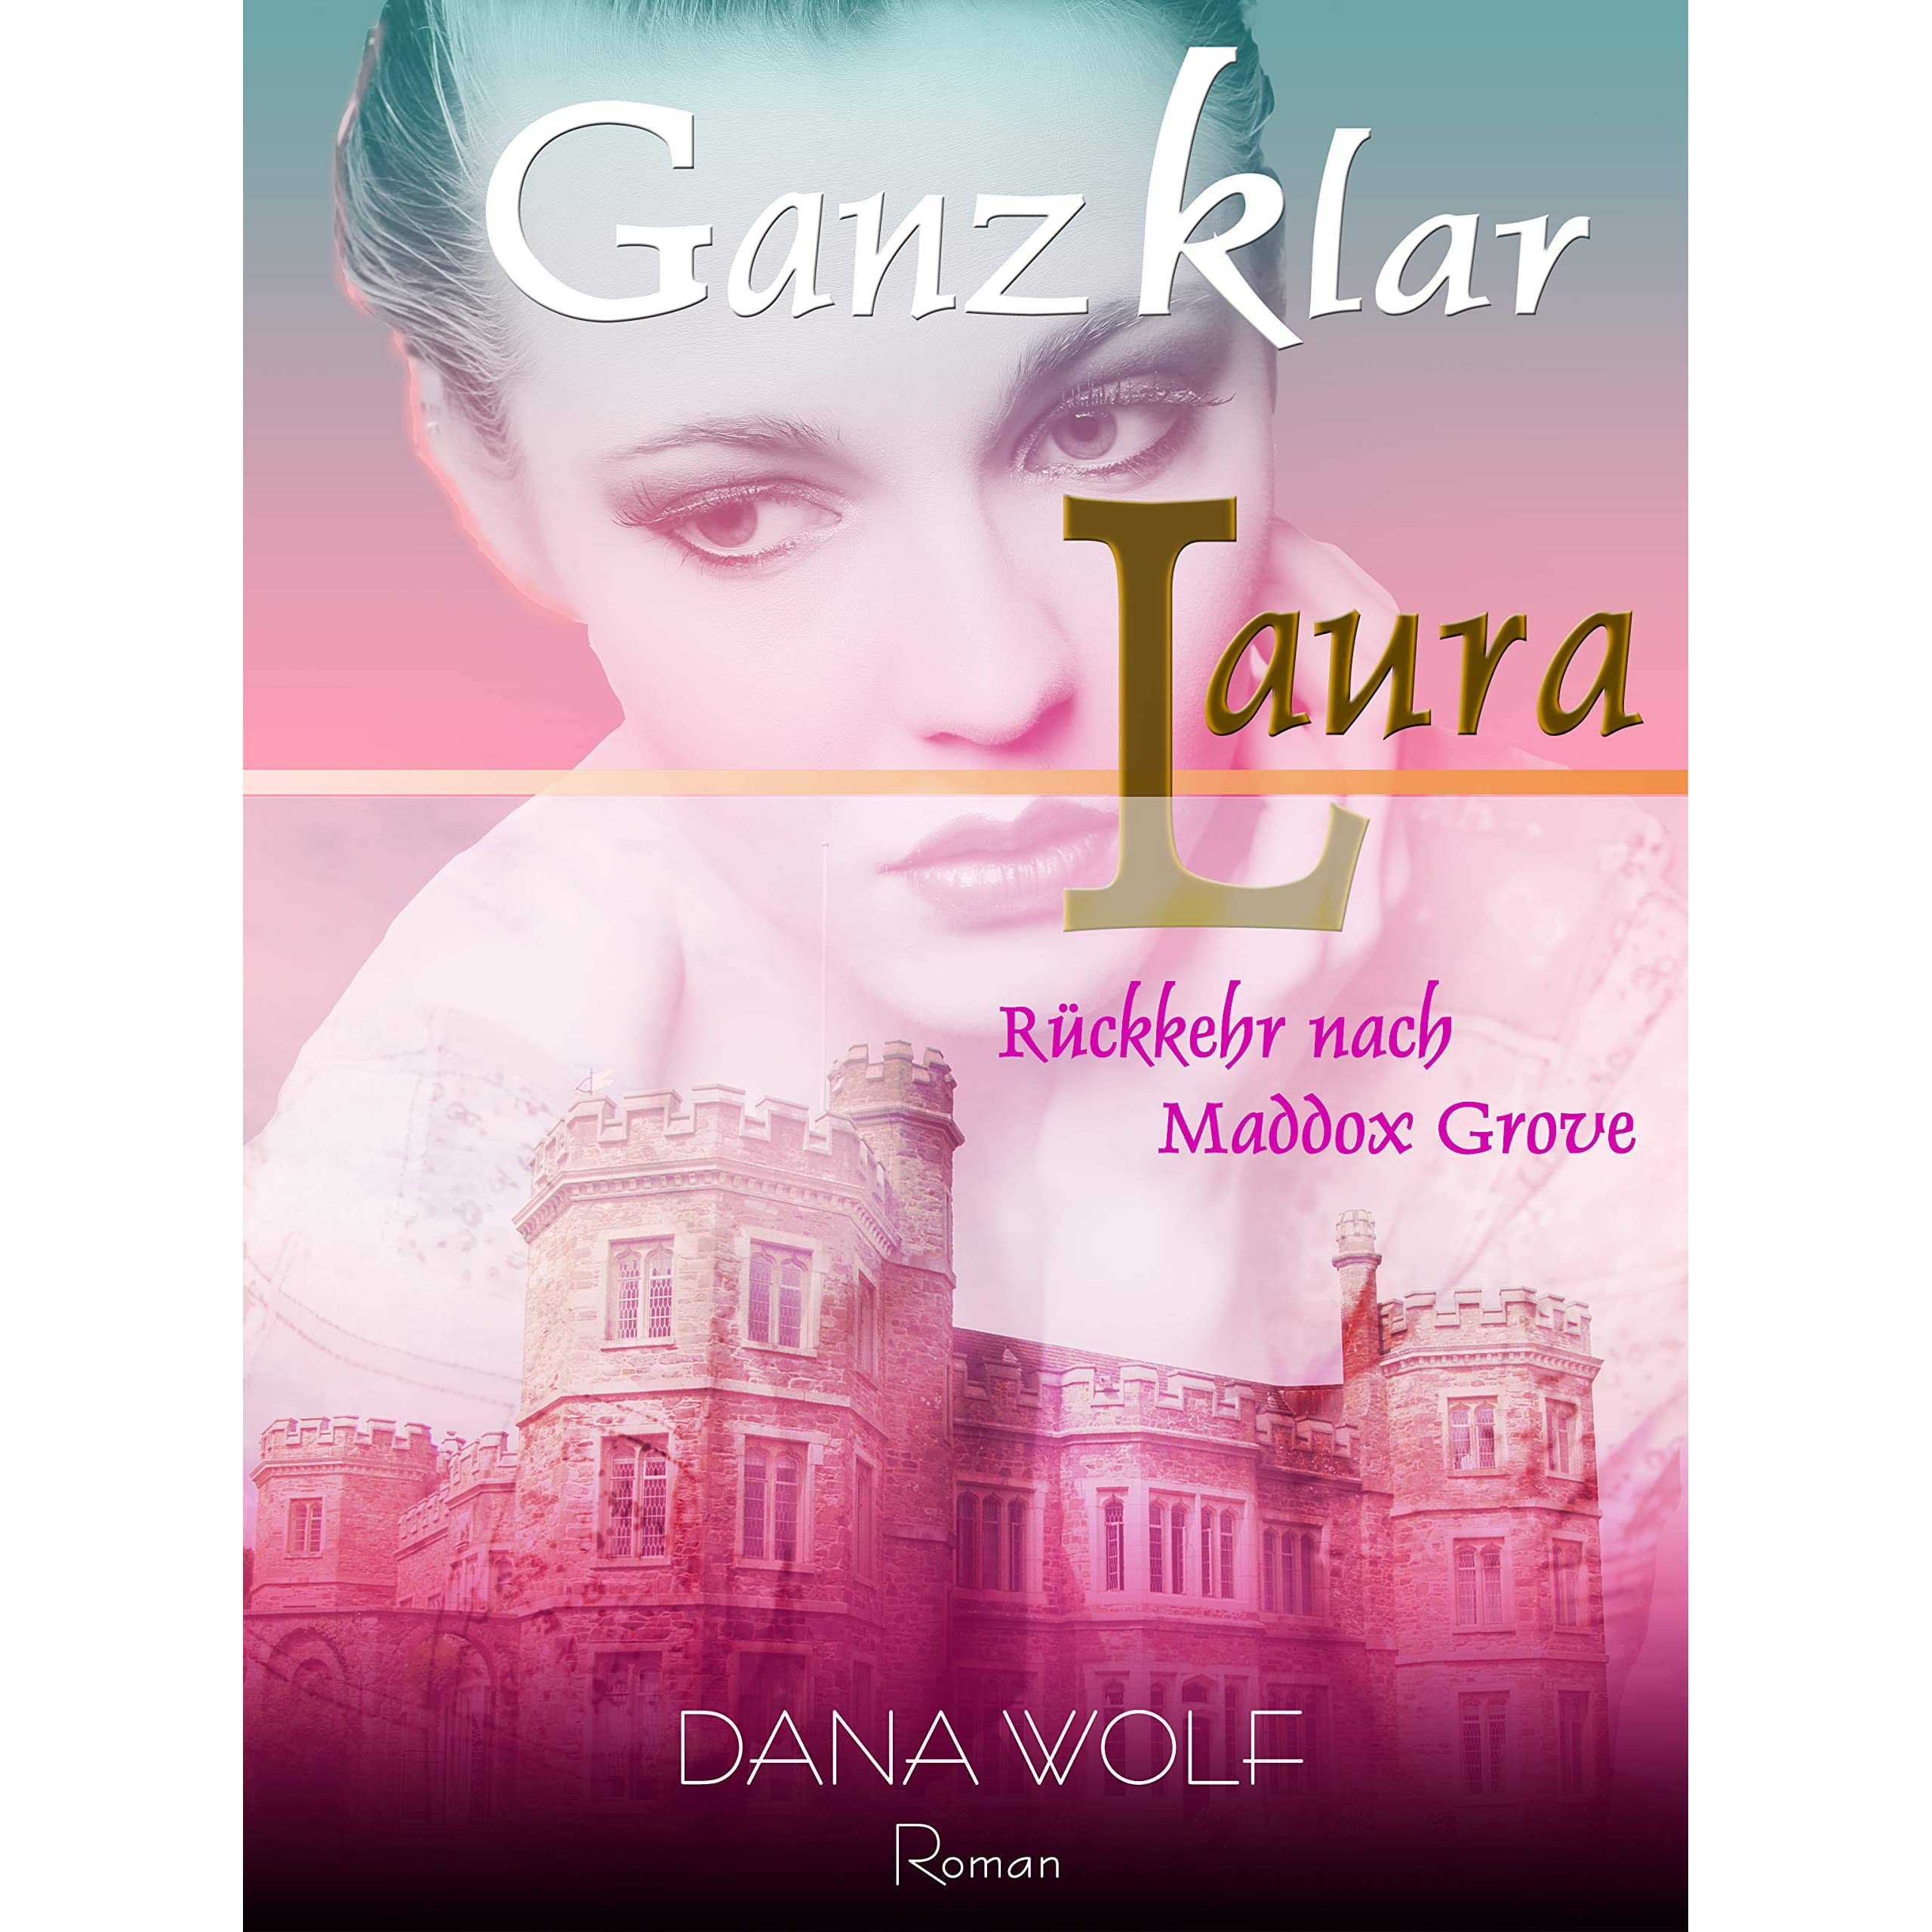 Ganz Klar Laura Ruckkehr Nach Maddox Grove By Dana Wolf Currently, dana wolf is chief scientific officer of artemis therapeutics, inc. goodreads